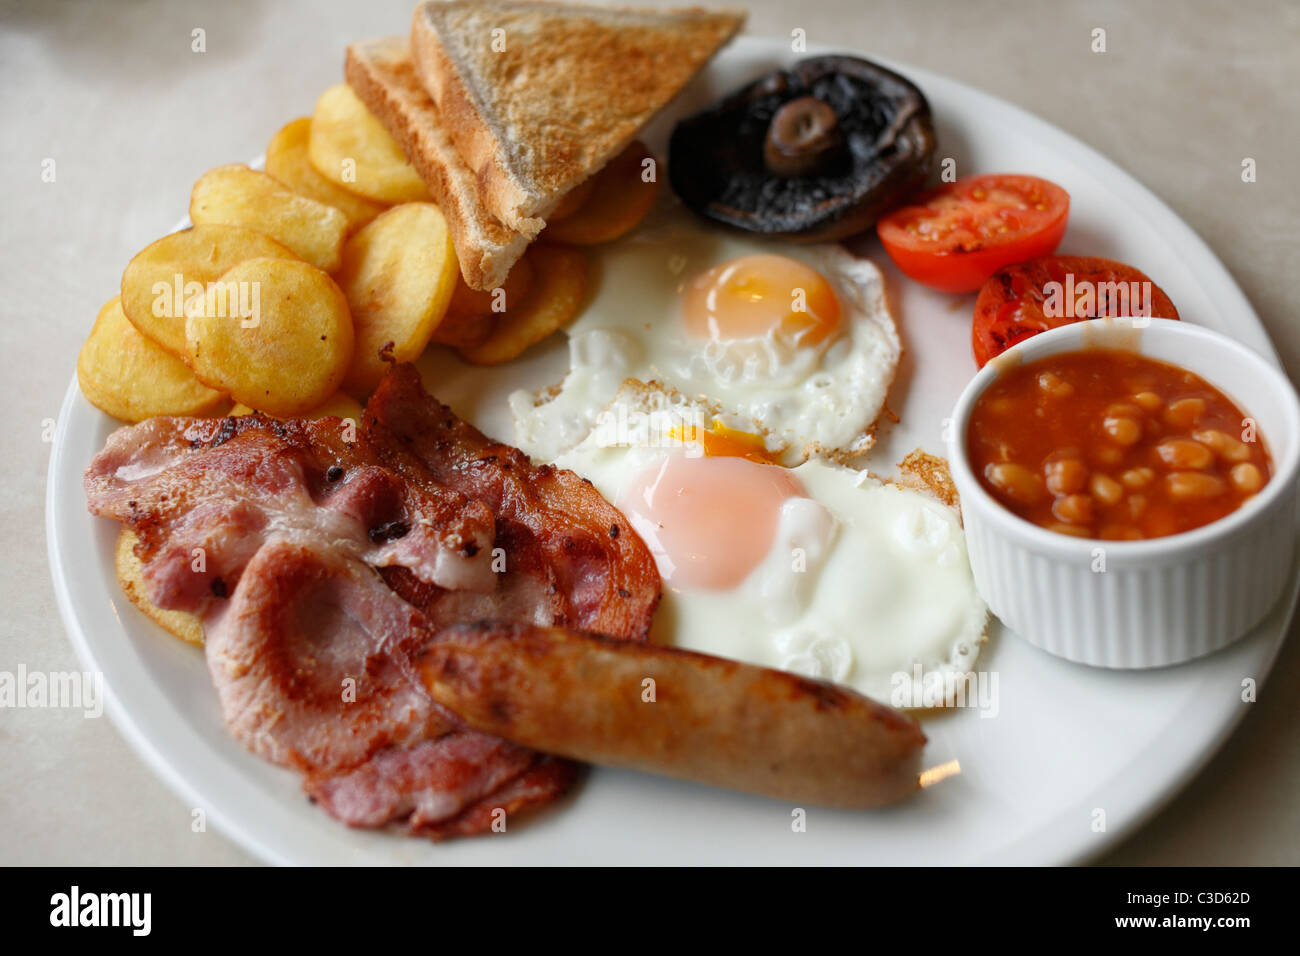 Breakfast All Day A Little Chef Olympic All Day Breakfast Stock Photo 36554853 Alamy